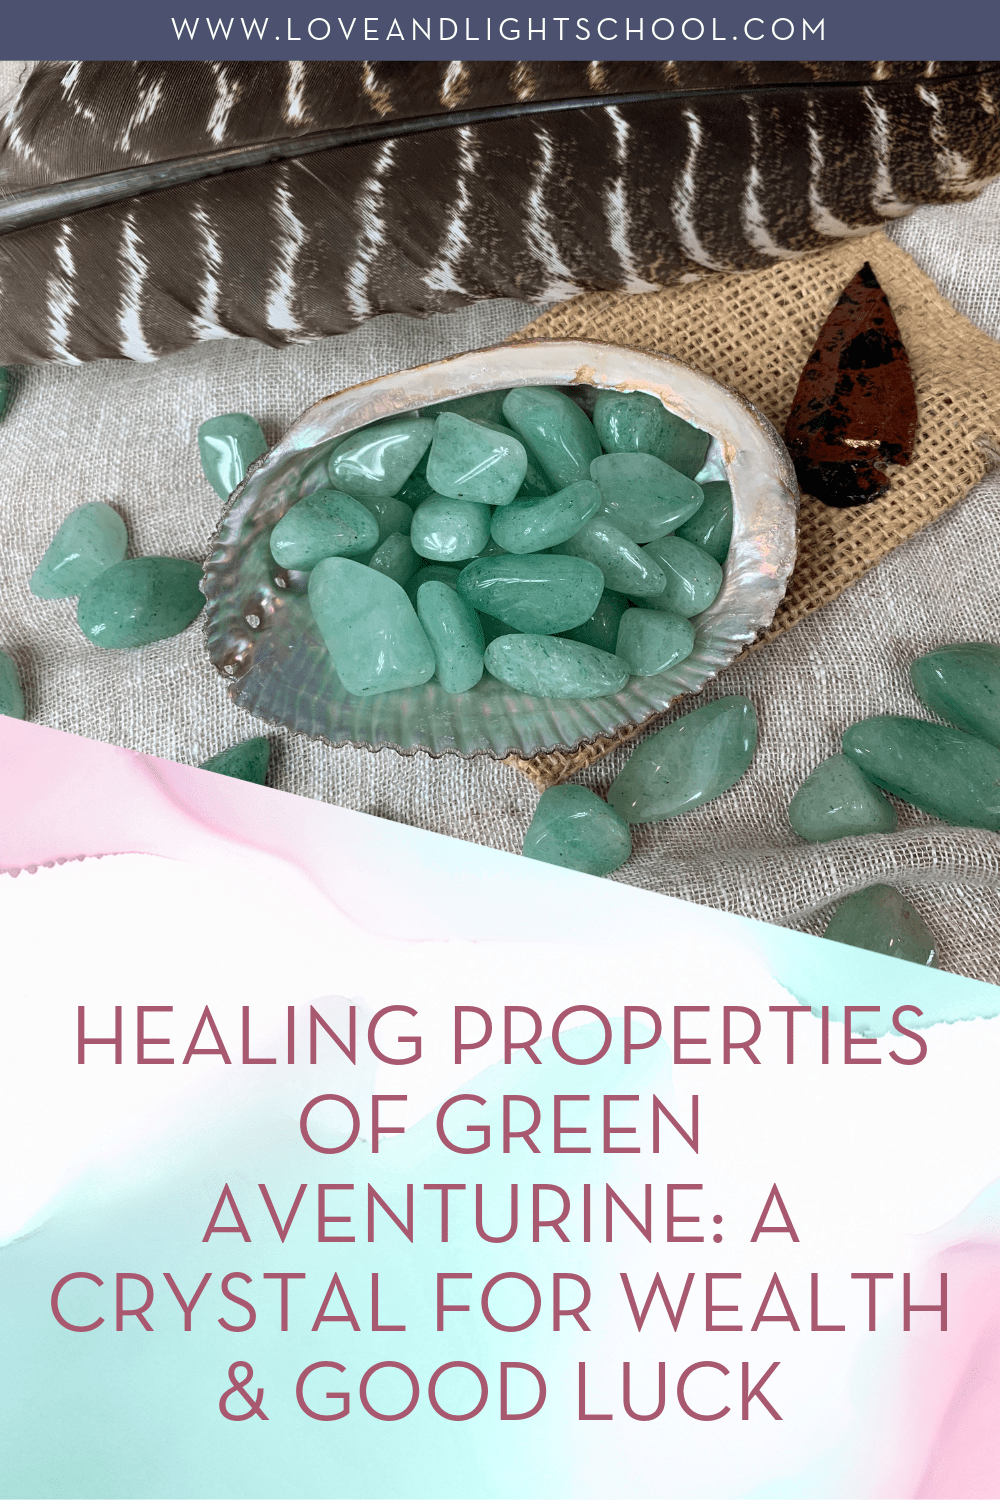 Healing Properties of Green Aventurine: A Crystal for Wealth & Good Luck